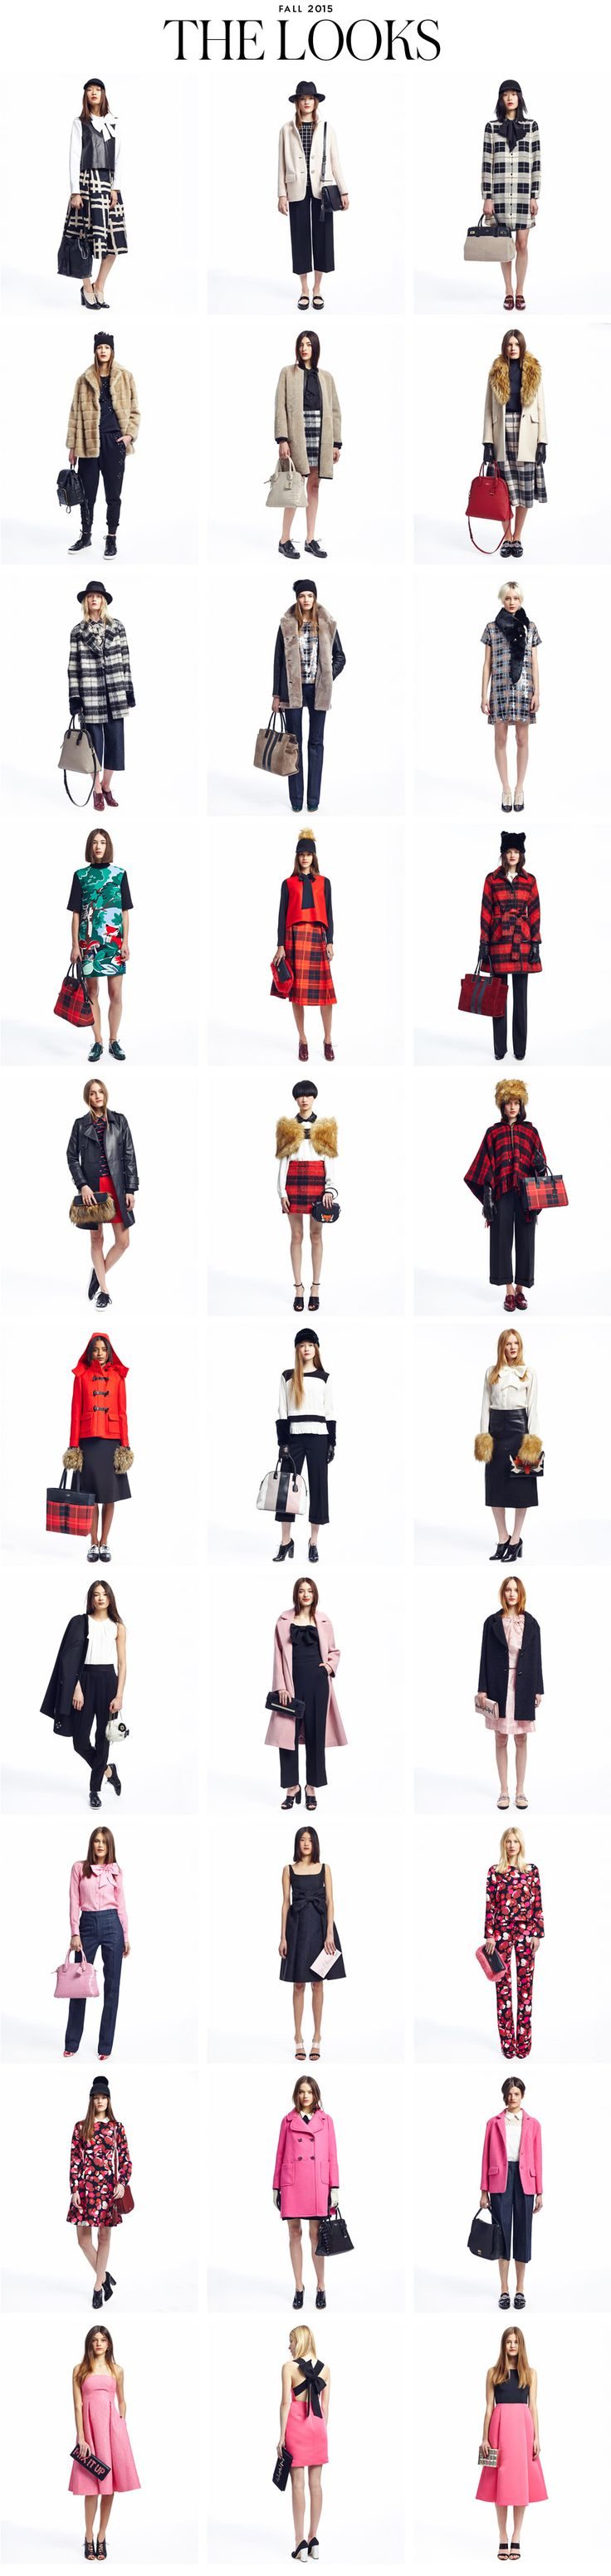 the Looks from New York Fashion Week 2015   Kate Spade New York